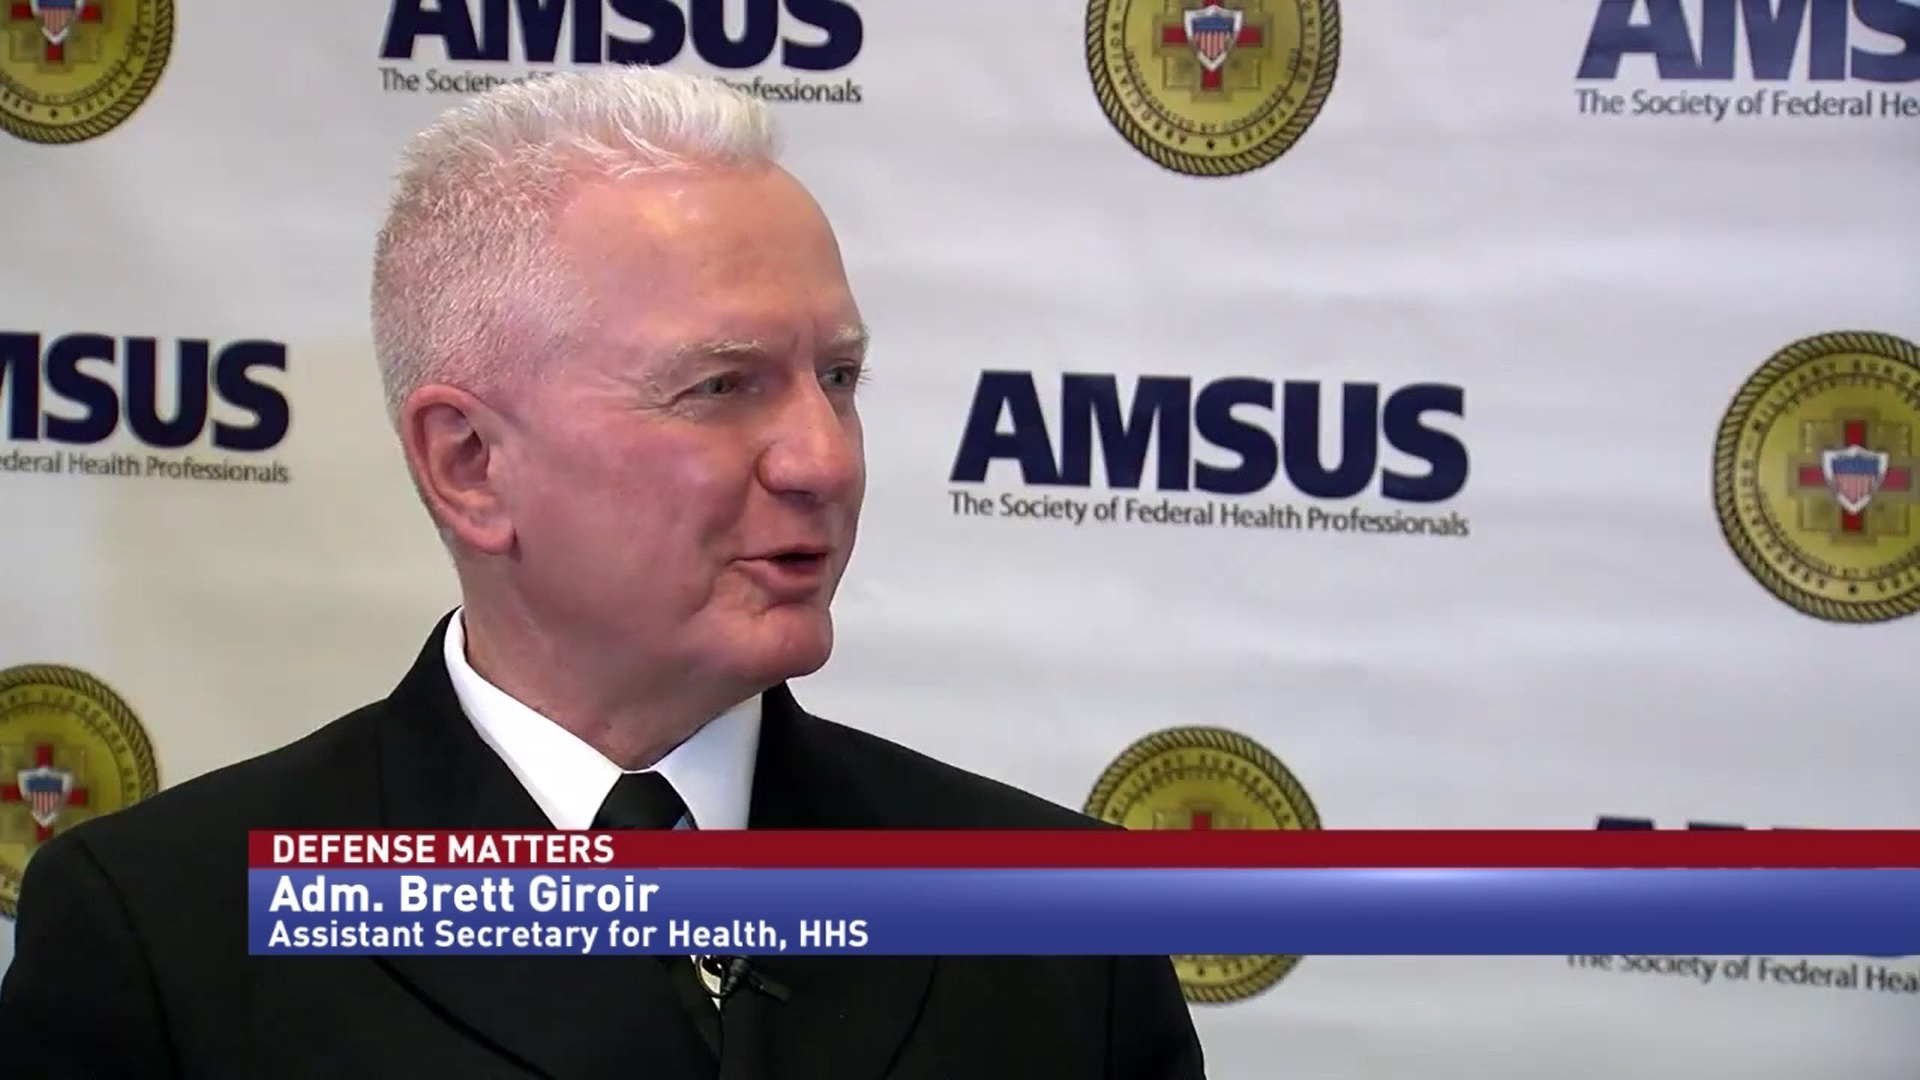 HHS provides medical outreach across government through Commissioned Corps